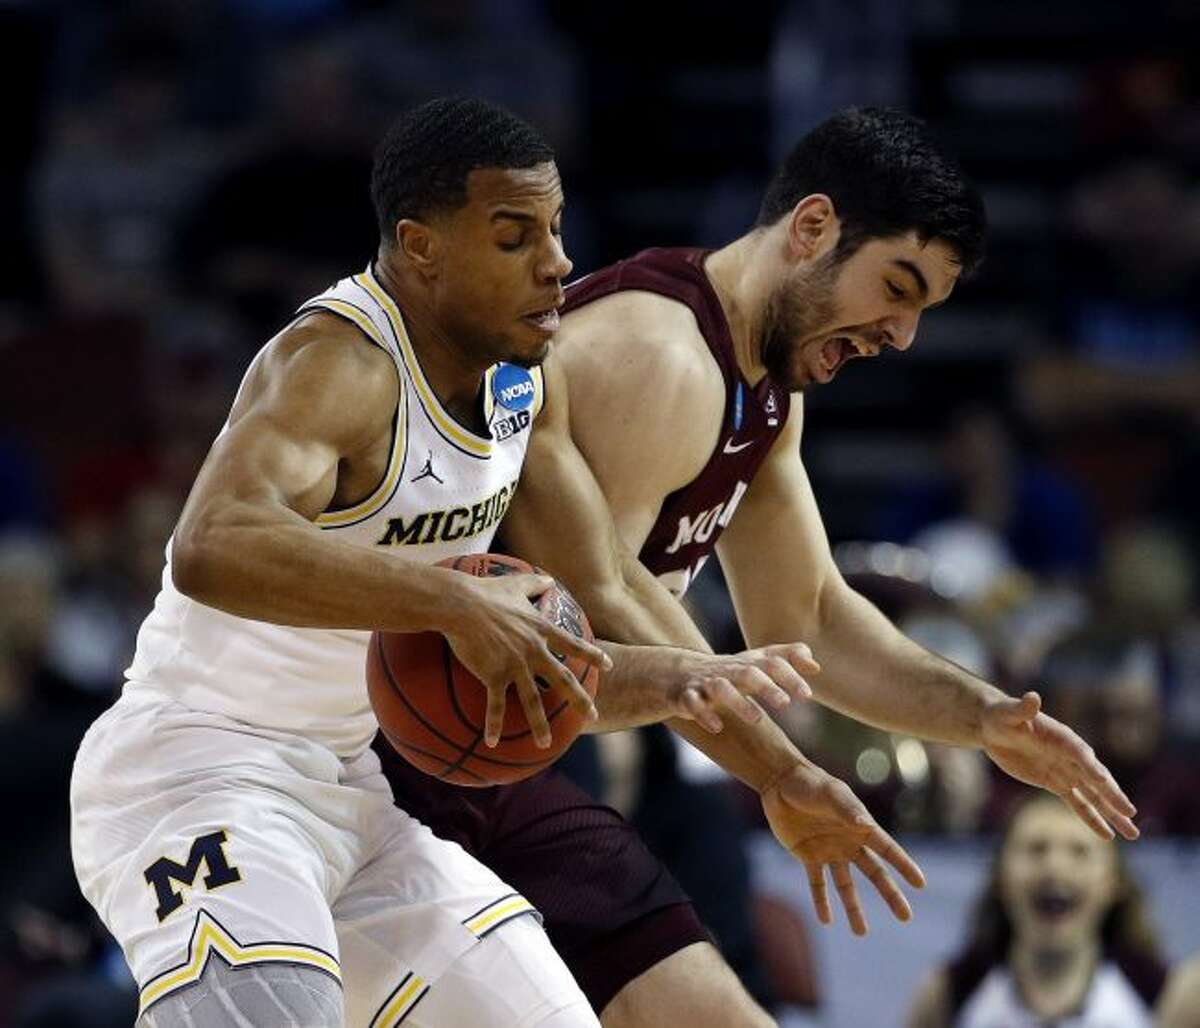 Montana forward Fabijan Krslovic, right, tries to steal the ball from Michigan guard Jaaron Simmons, left, during the first half of an NCAA men's college basketball tournament first-round game Thursday, March 15, 2018, in Wichita, Kan. (AP Photo/Charlie Riedel)